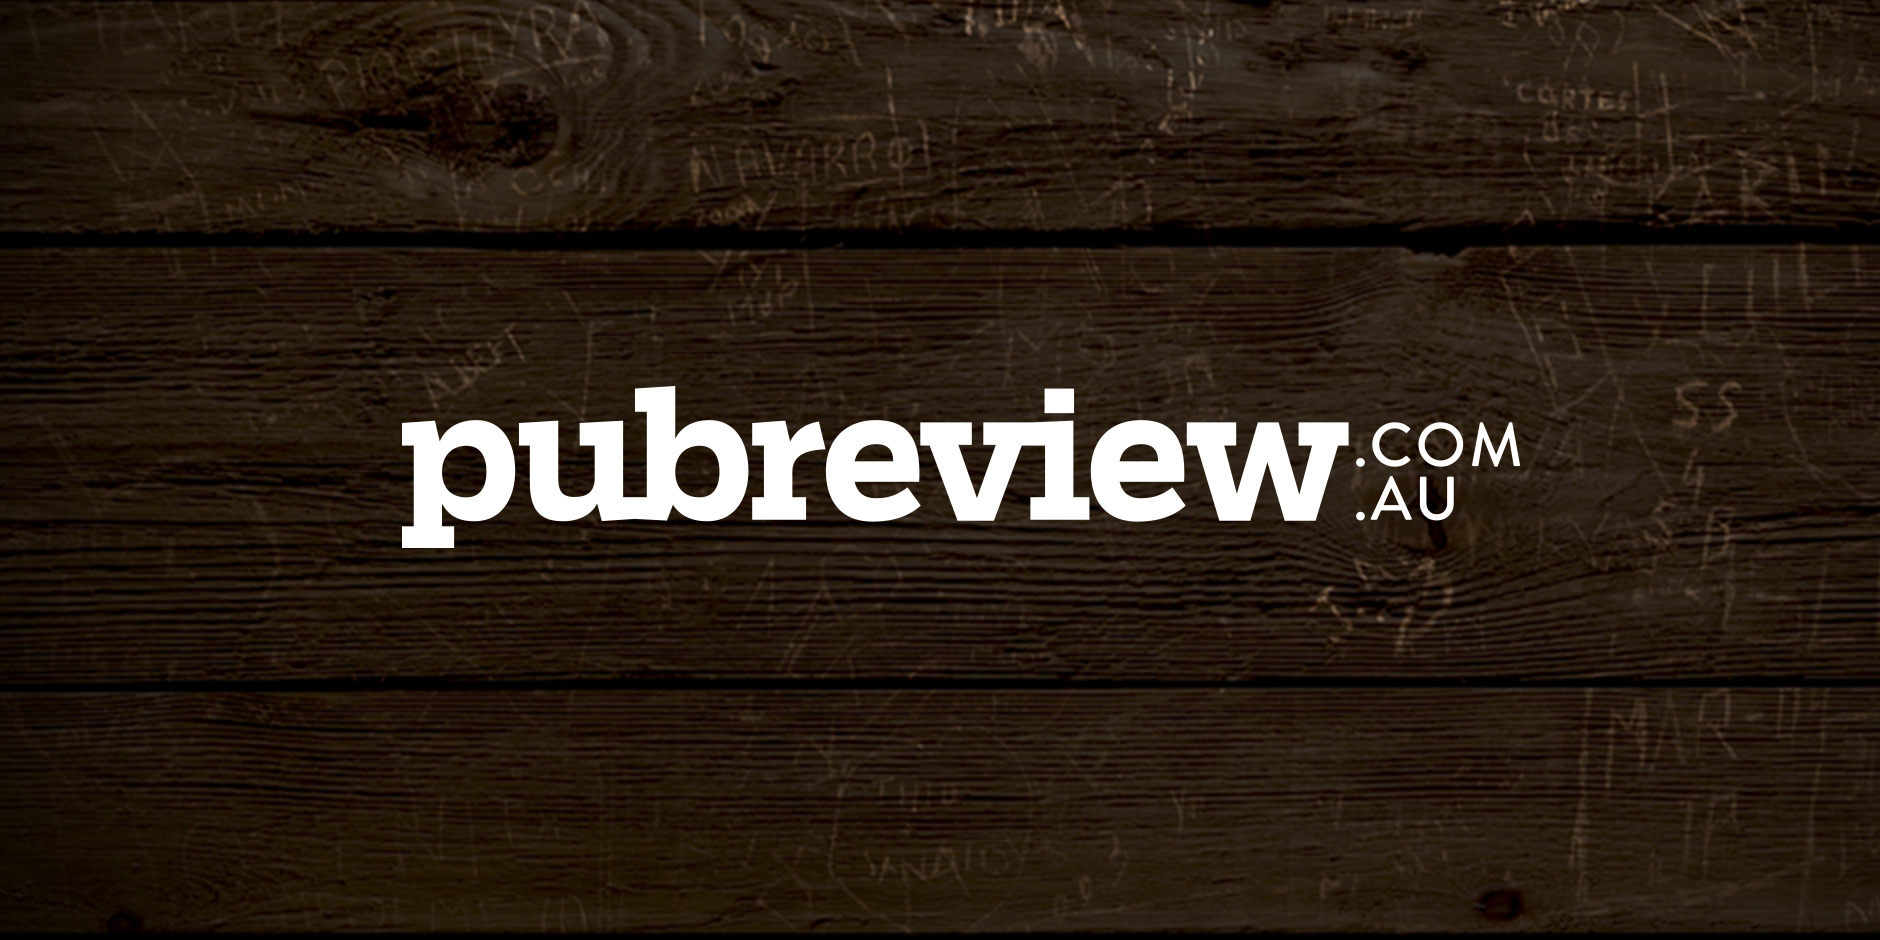 A logotype for a website dedicated to... well, reviewing pubs